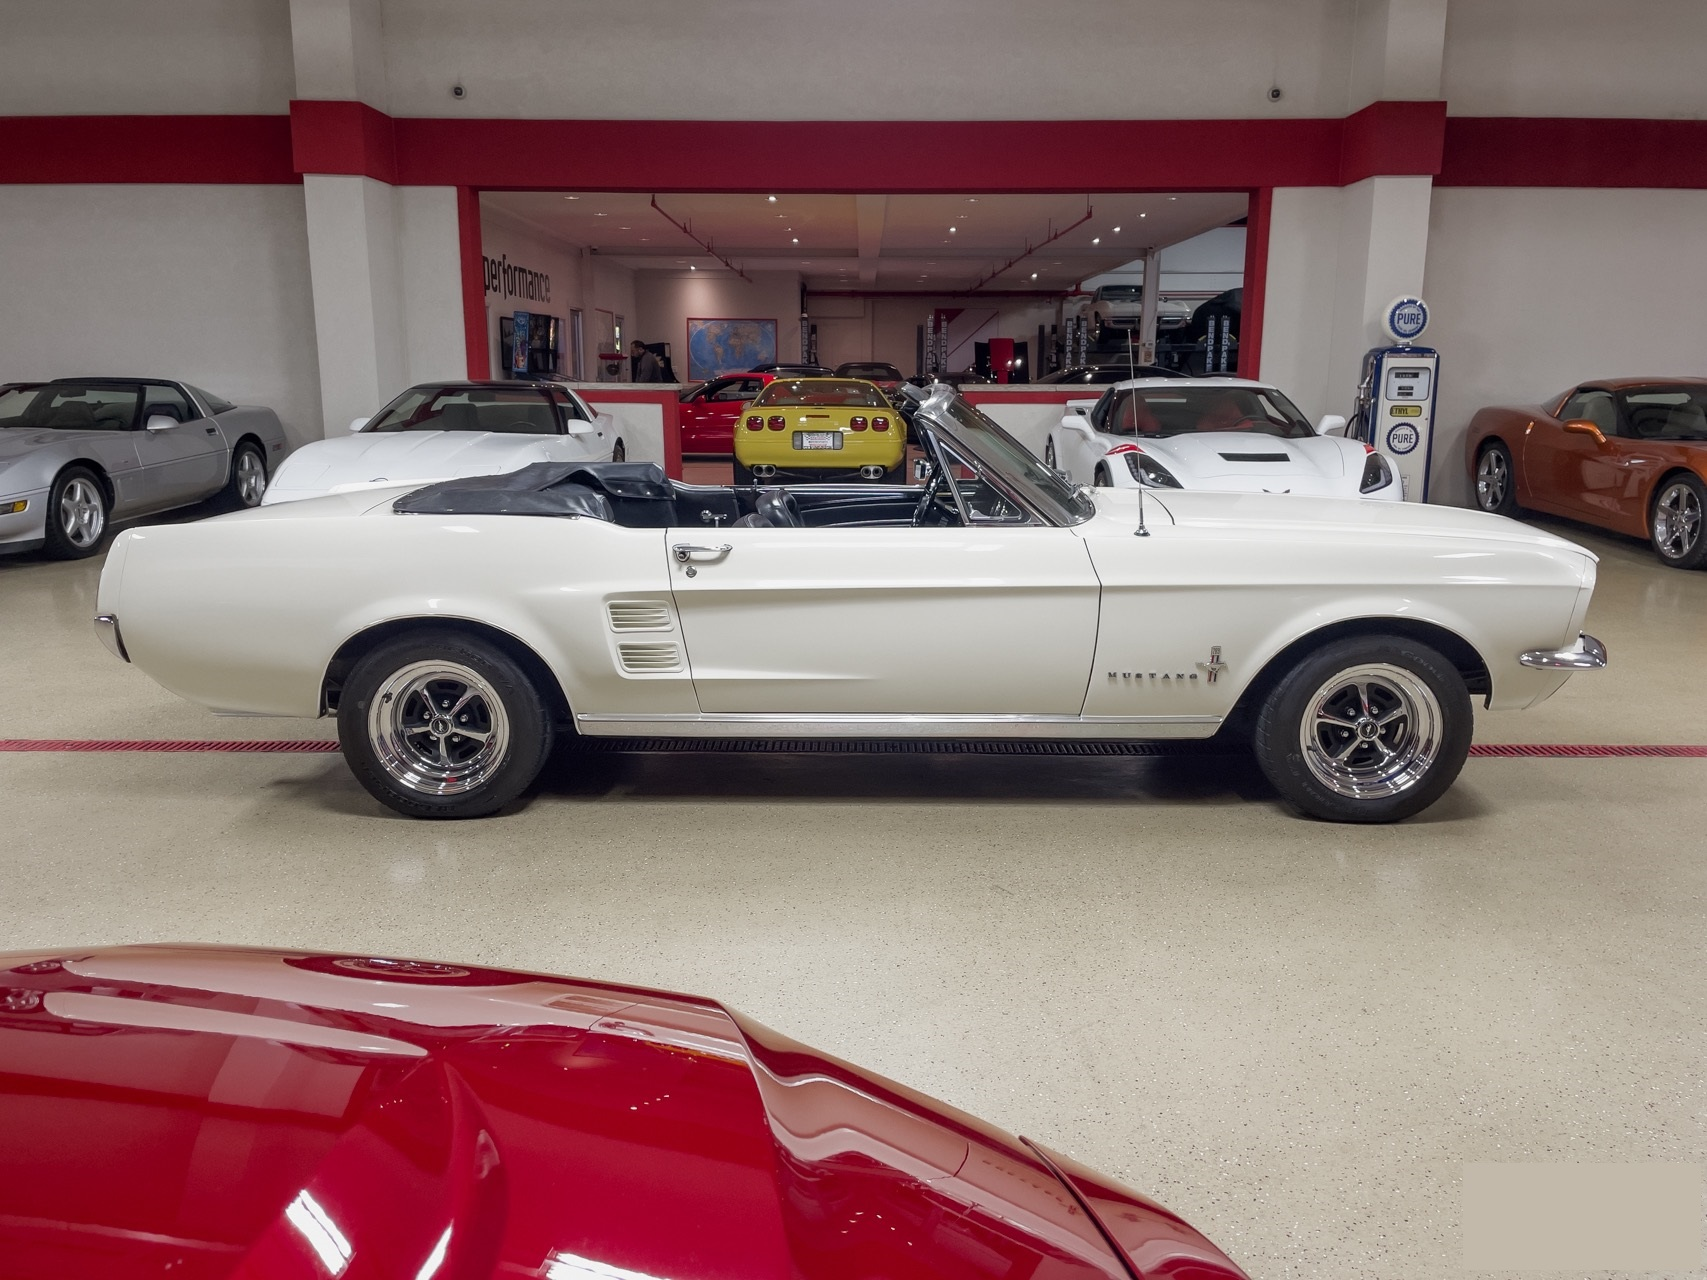 Ford-Mustang-cabriolet-1967-a6